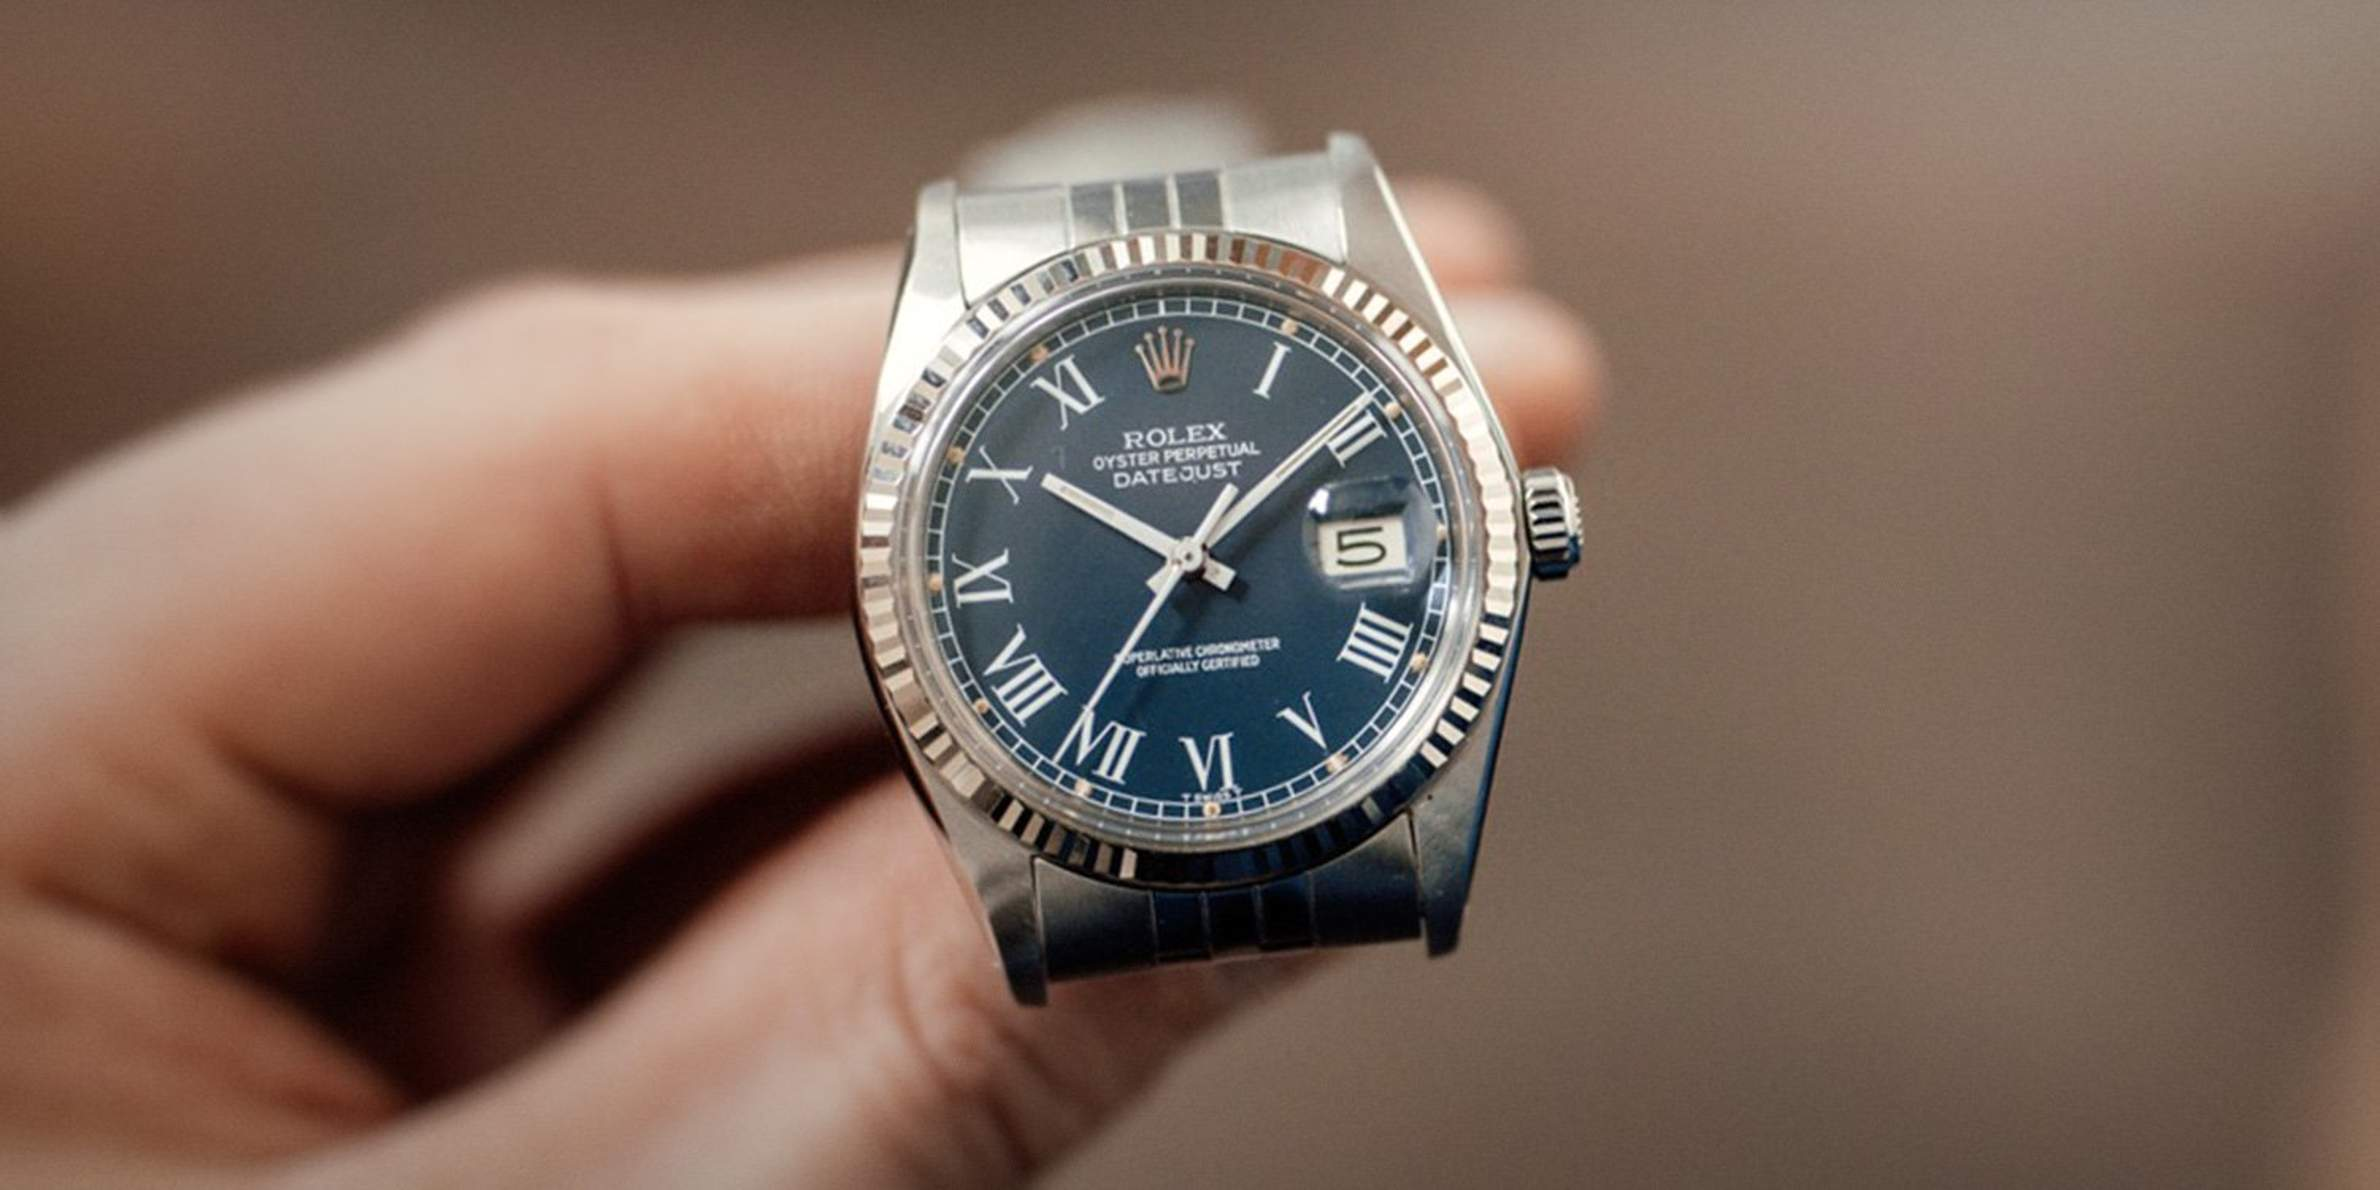 We Want to Hear About Your Rolex Experience